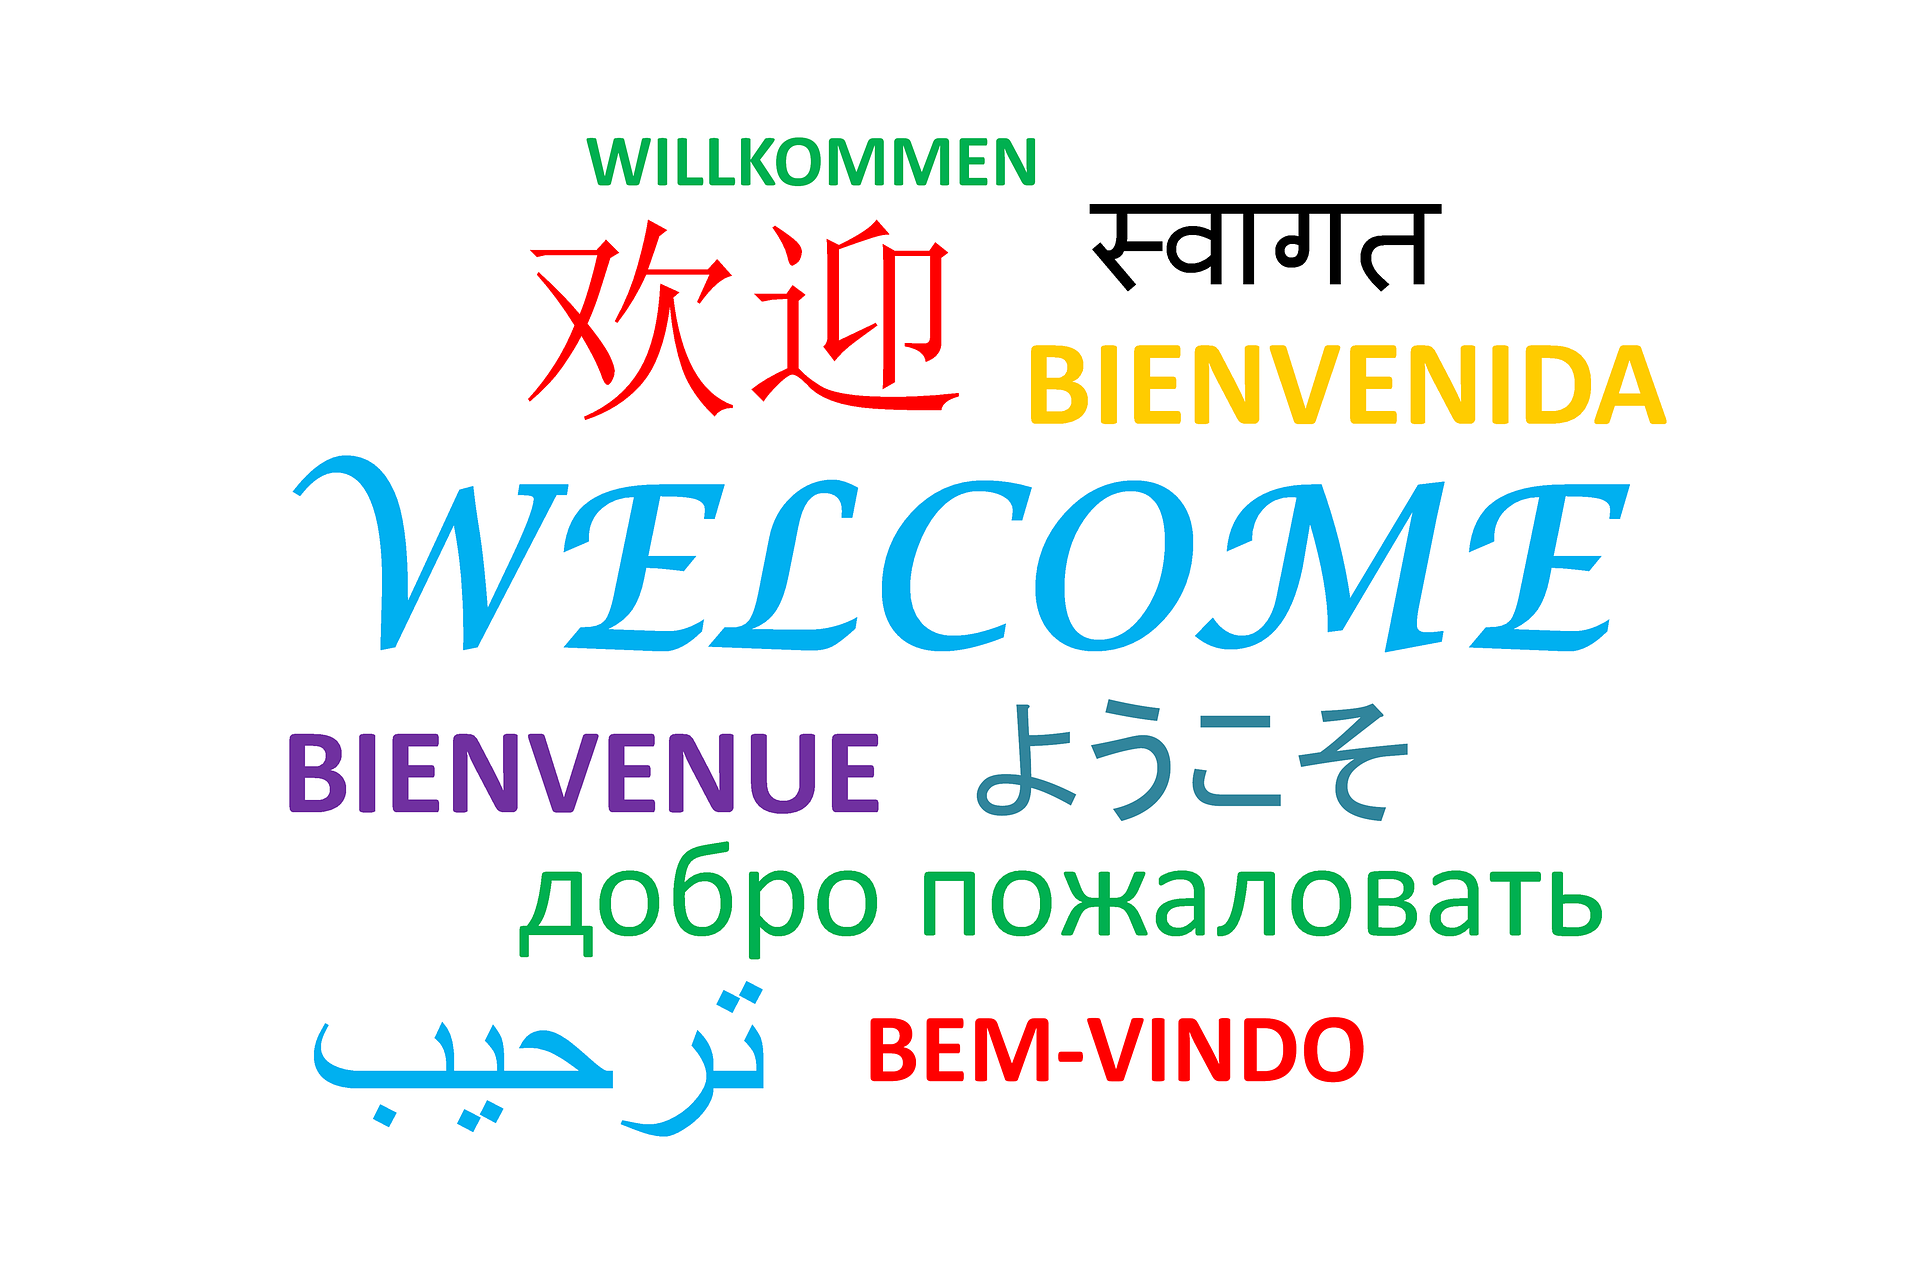 Welcome is written in many languages spoken around the world. Canada welcomes newcomers from all over the world.